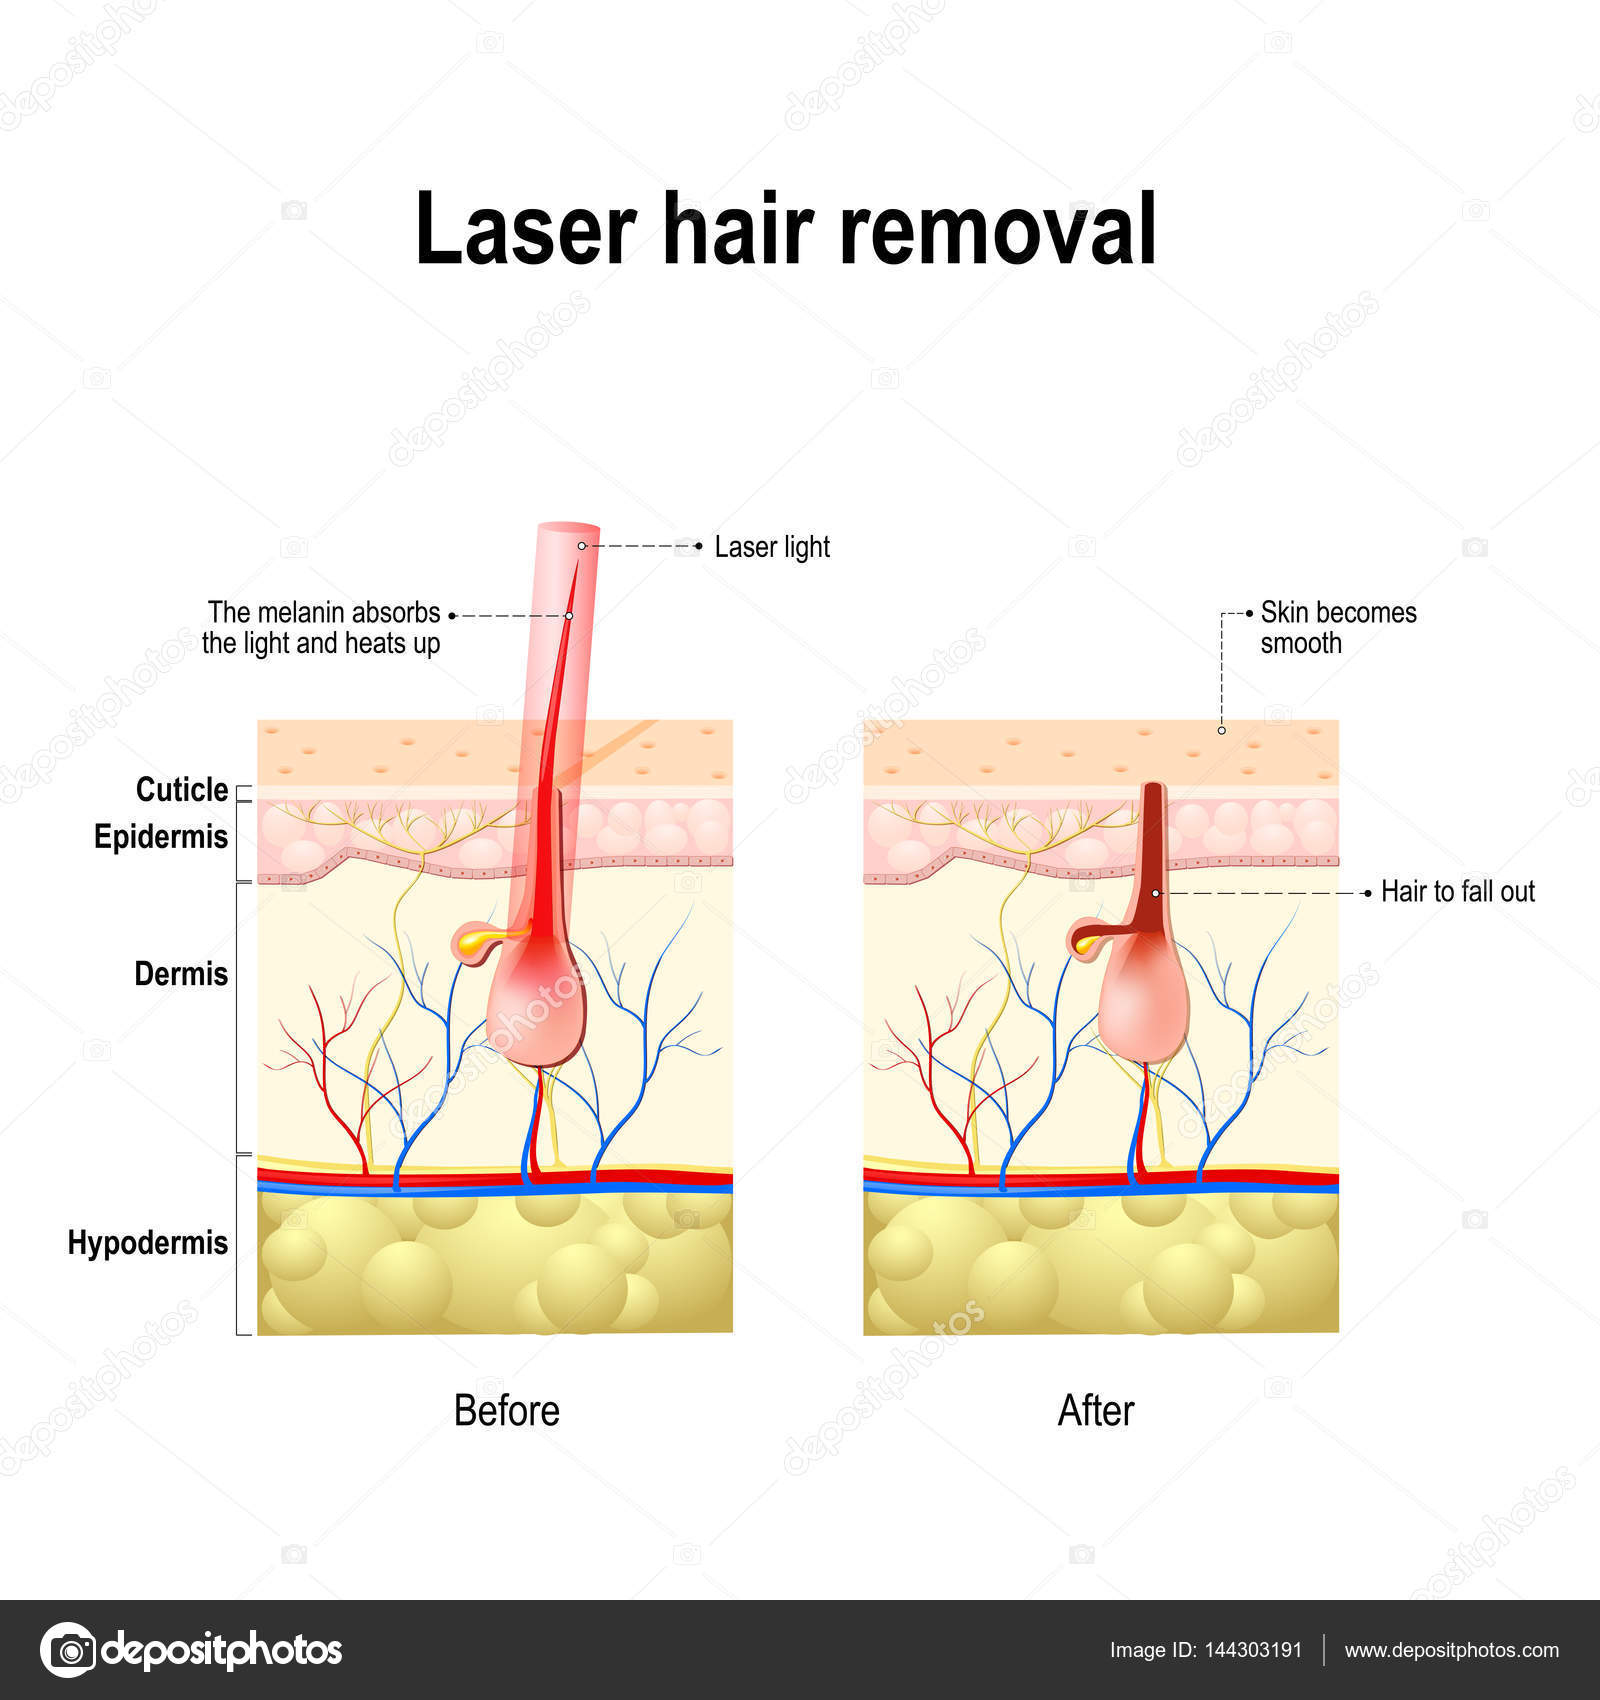 hight resolution of laser hair removal laser produce a beam of light that is absorbed by the pigment in hair this causes damage to the hair follicle without hurting the skin